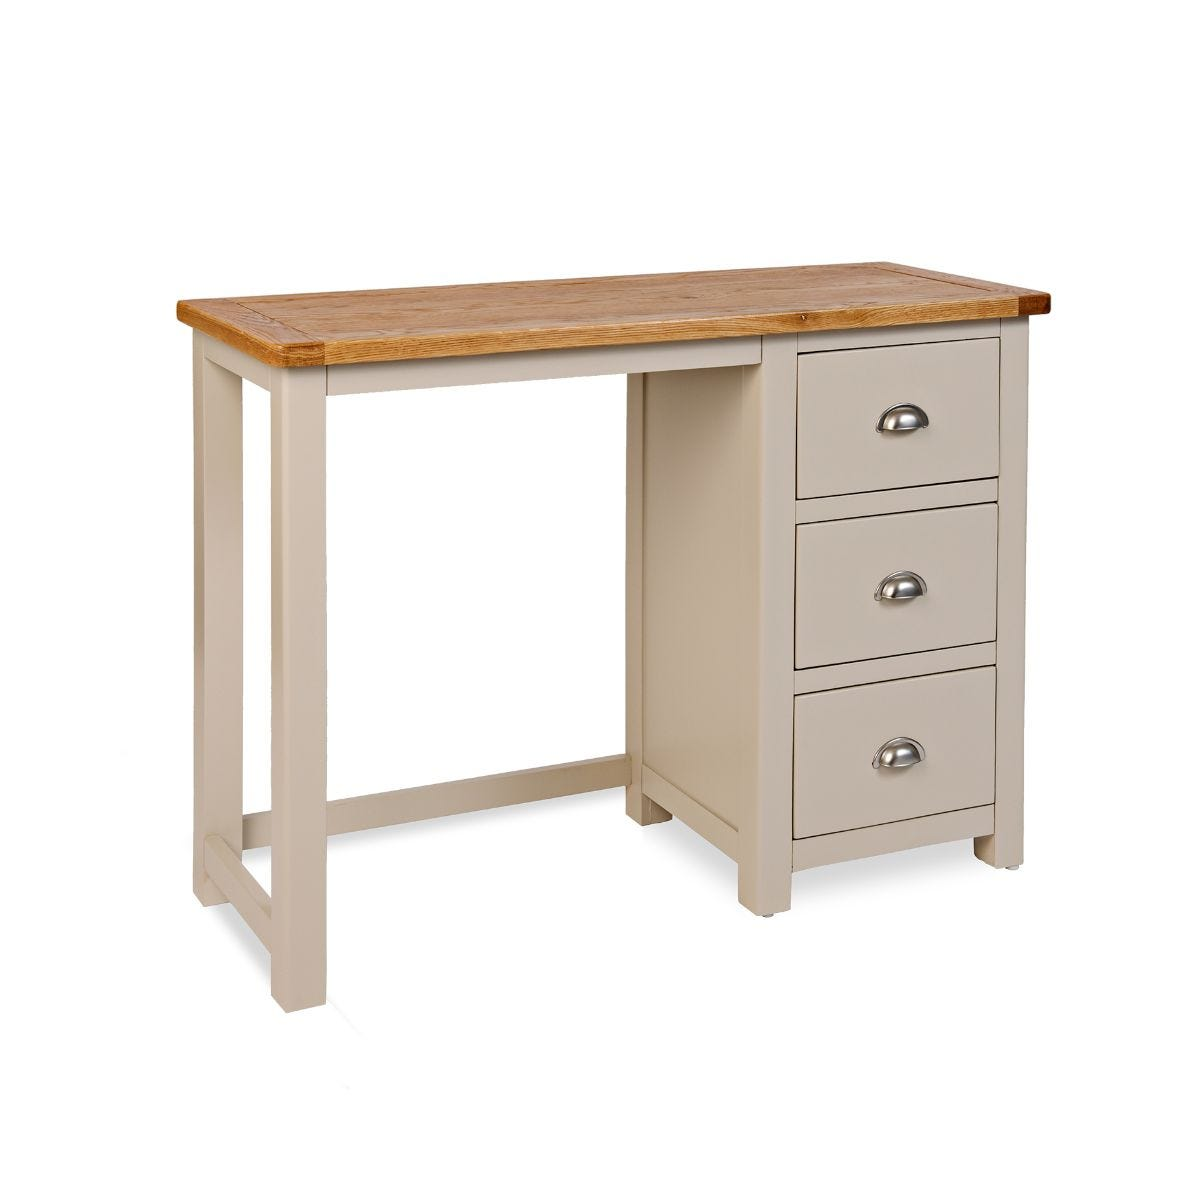 Wiltshire Home Office Desk Oak and Stone Grey, Oak/Stone Grey